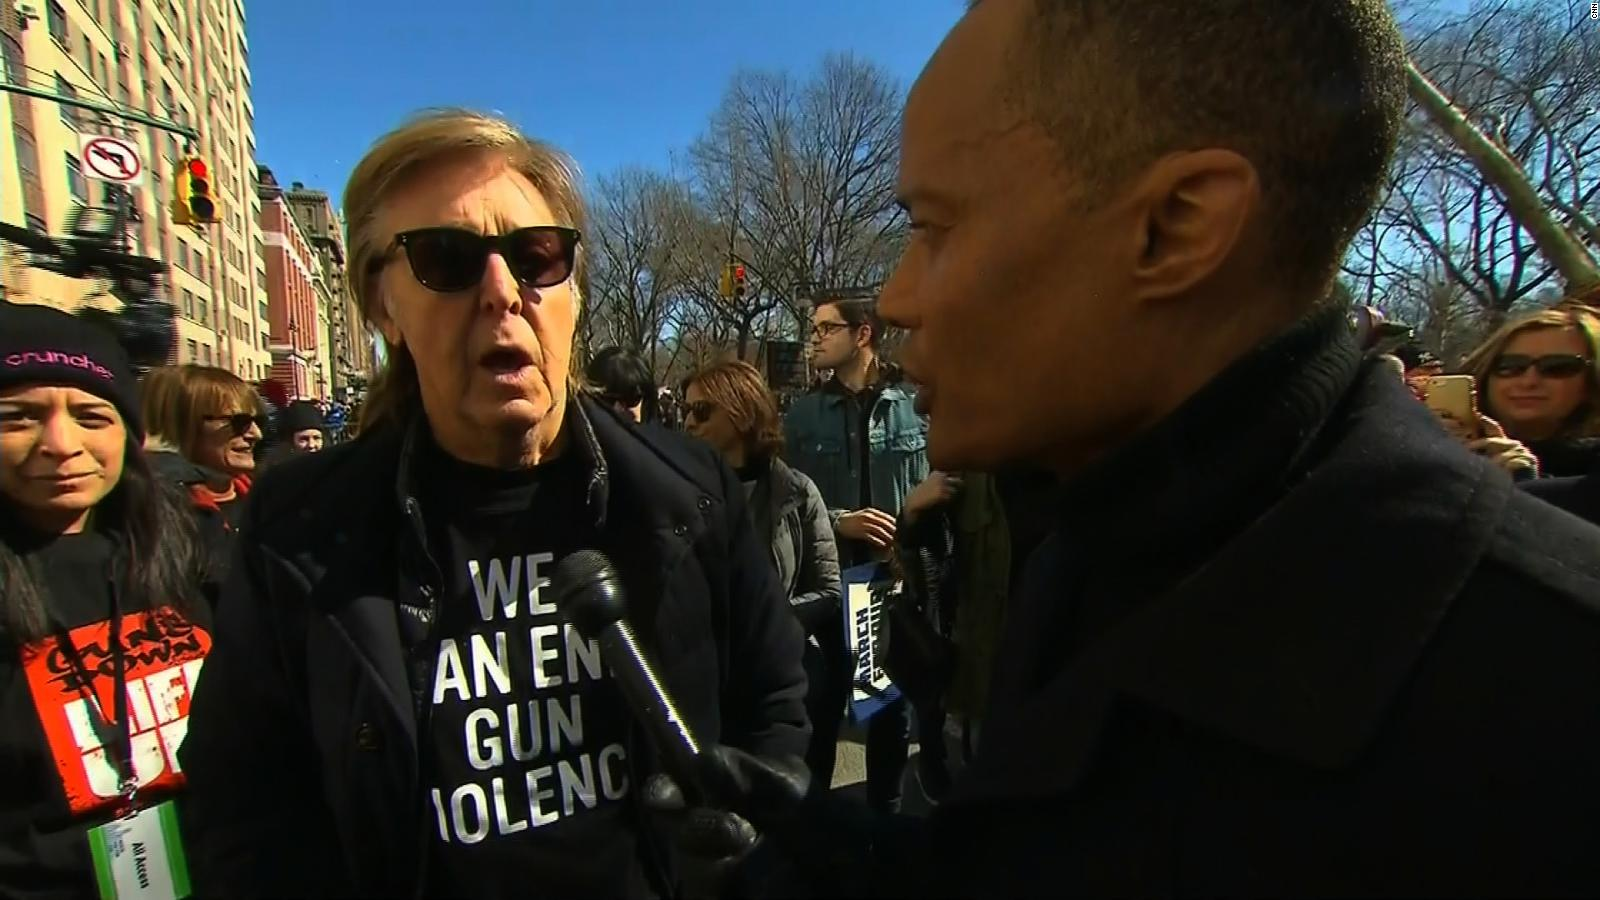 Paul McCartney Was At The March In New York Close To Site Where His Friend John Lennon Shot Death